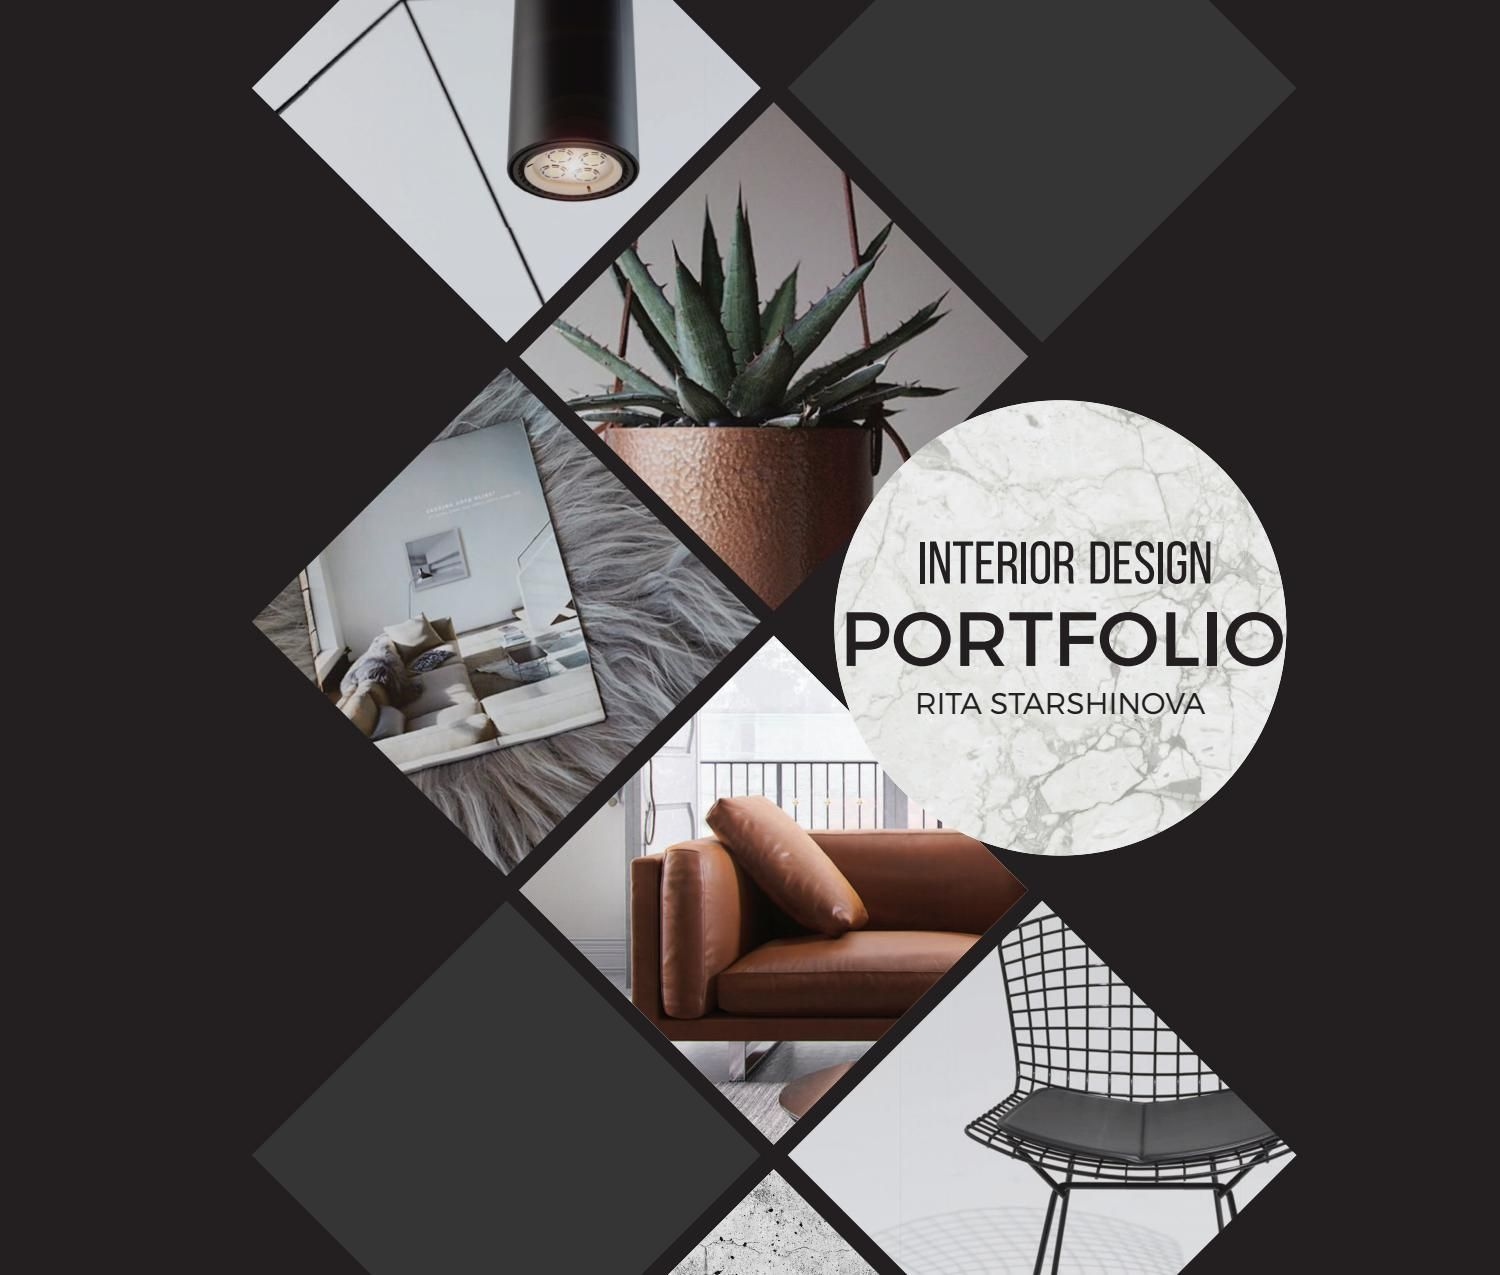 Best Interior Designer Websites: Rita Starshinova Portfolio